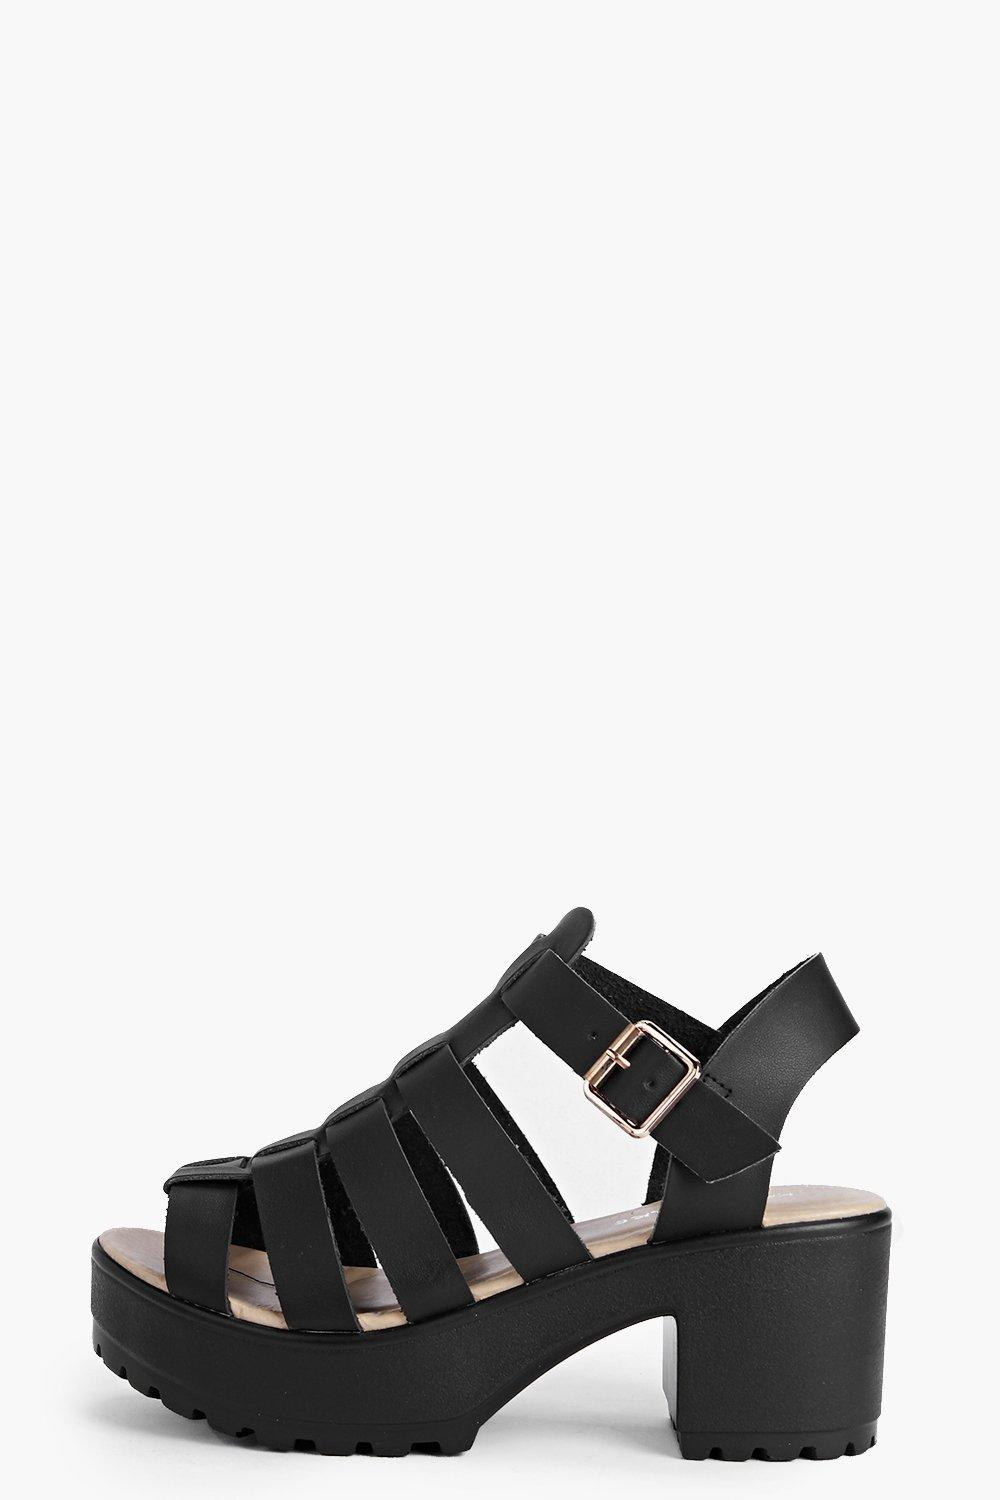 Black sandals boohoo